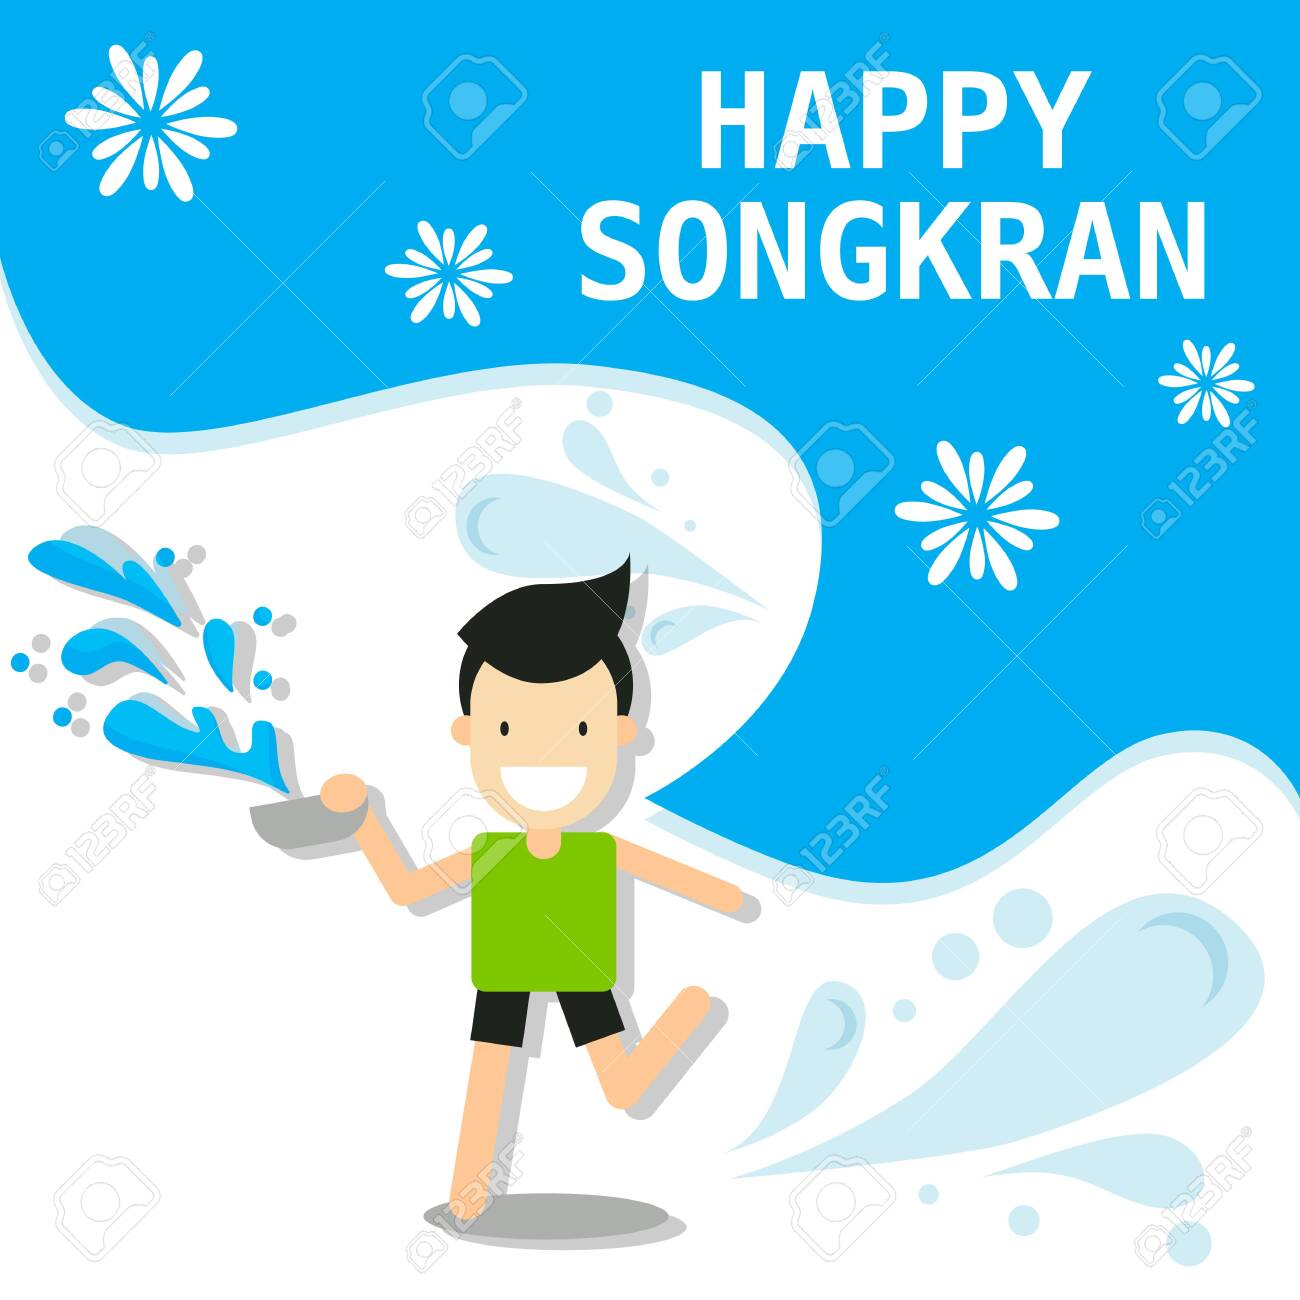 cartoon character abstract people for Songkran festival in Thailand for Thai New Year during hot summer in 13th april vector illustration - 139183027